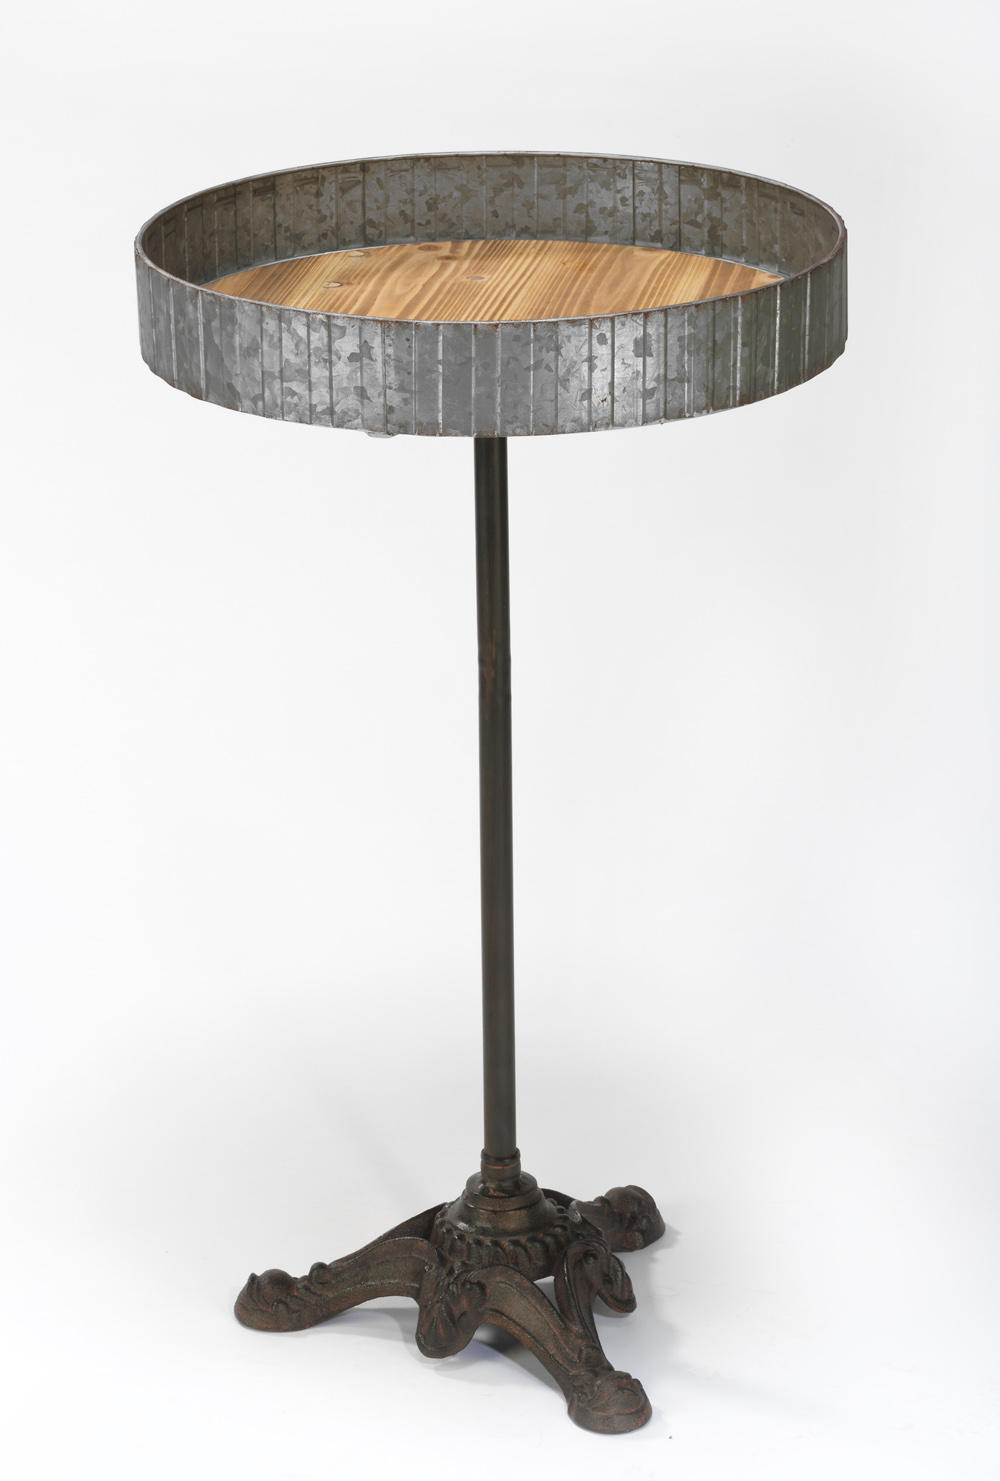 Raw Metal and Wood Table w/ Iron Stand (Tables & Furniture)